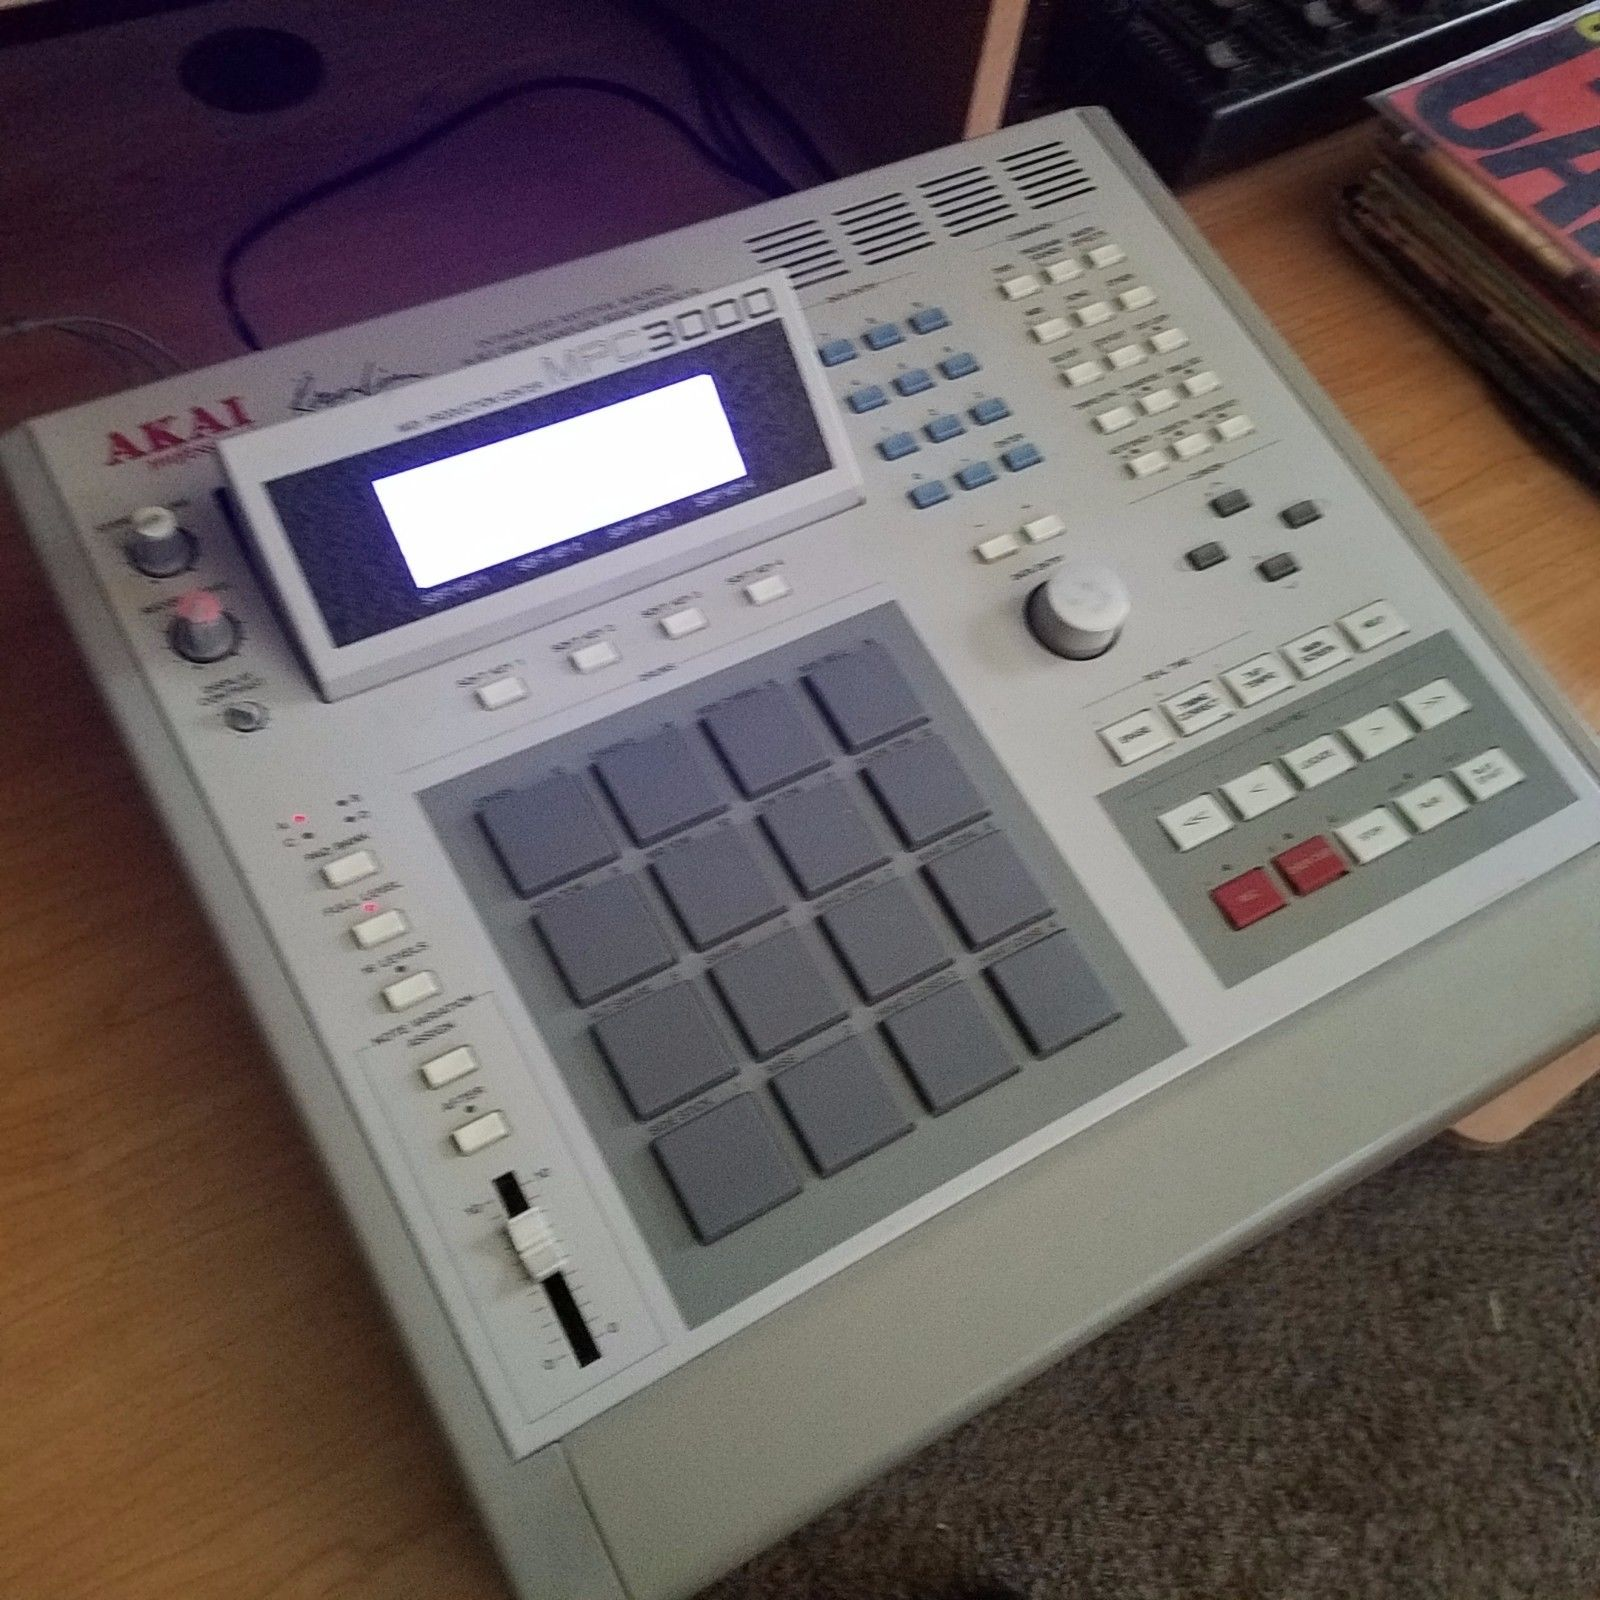 MPCHunter » Blog Archive » Akai MPC 3000